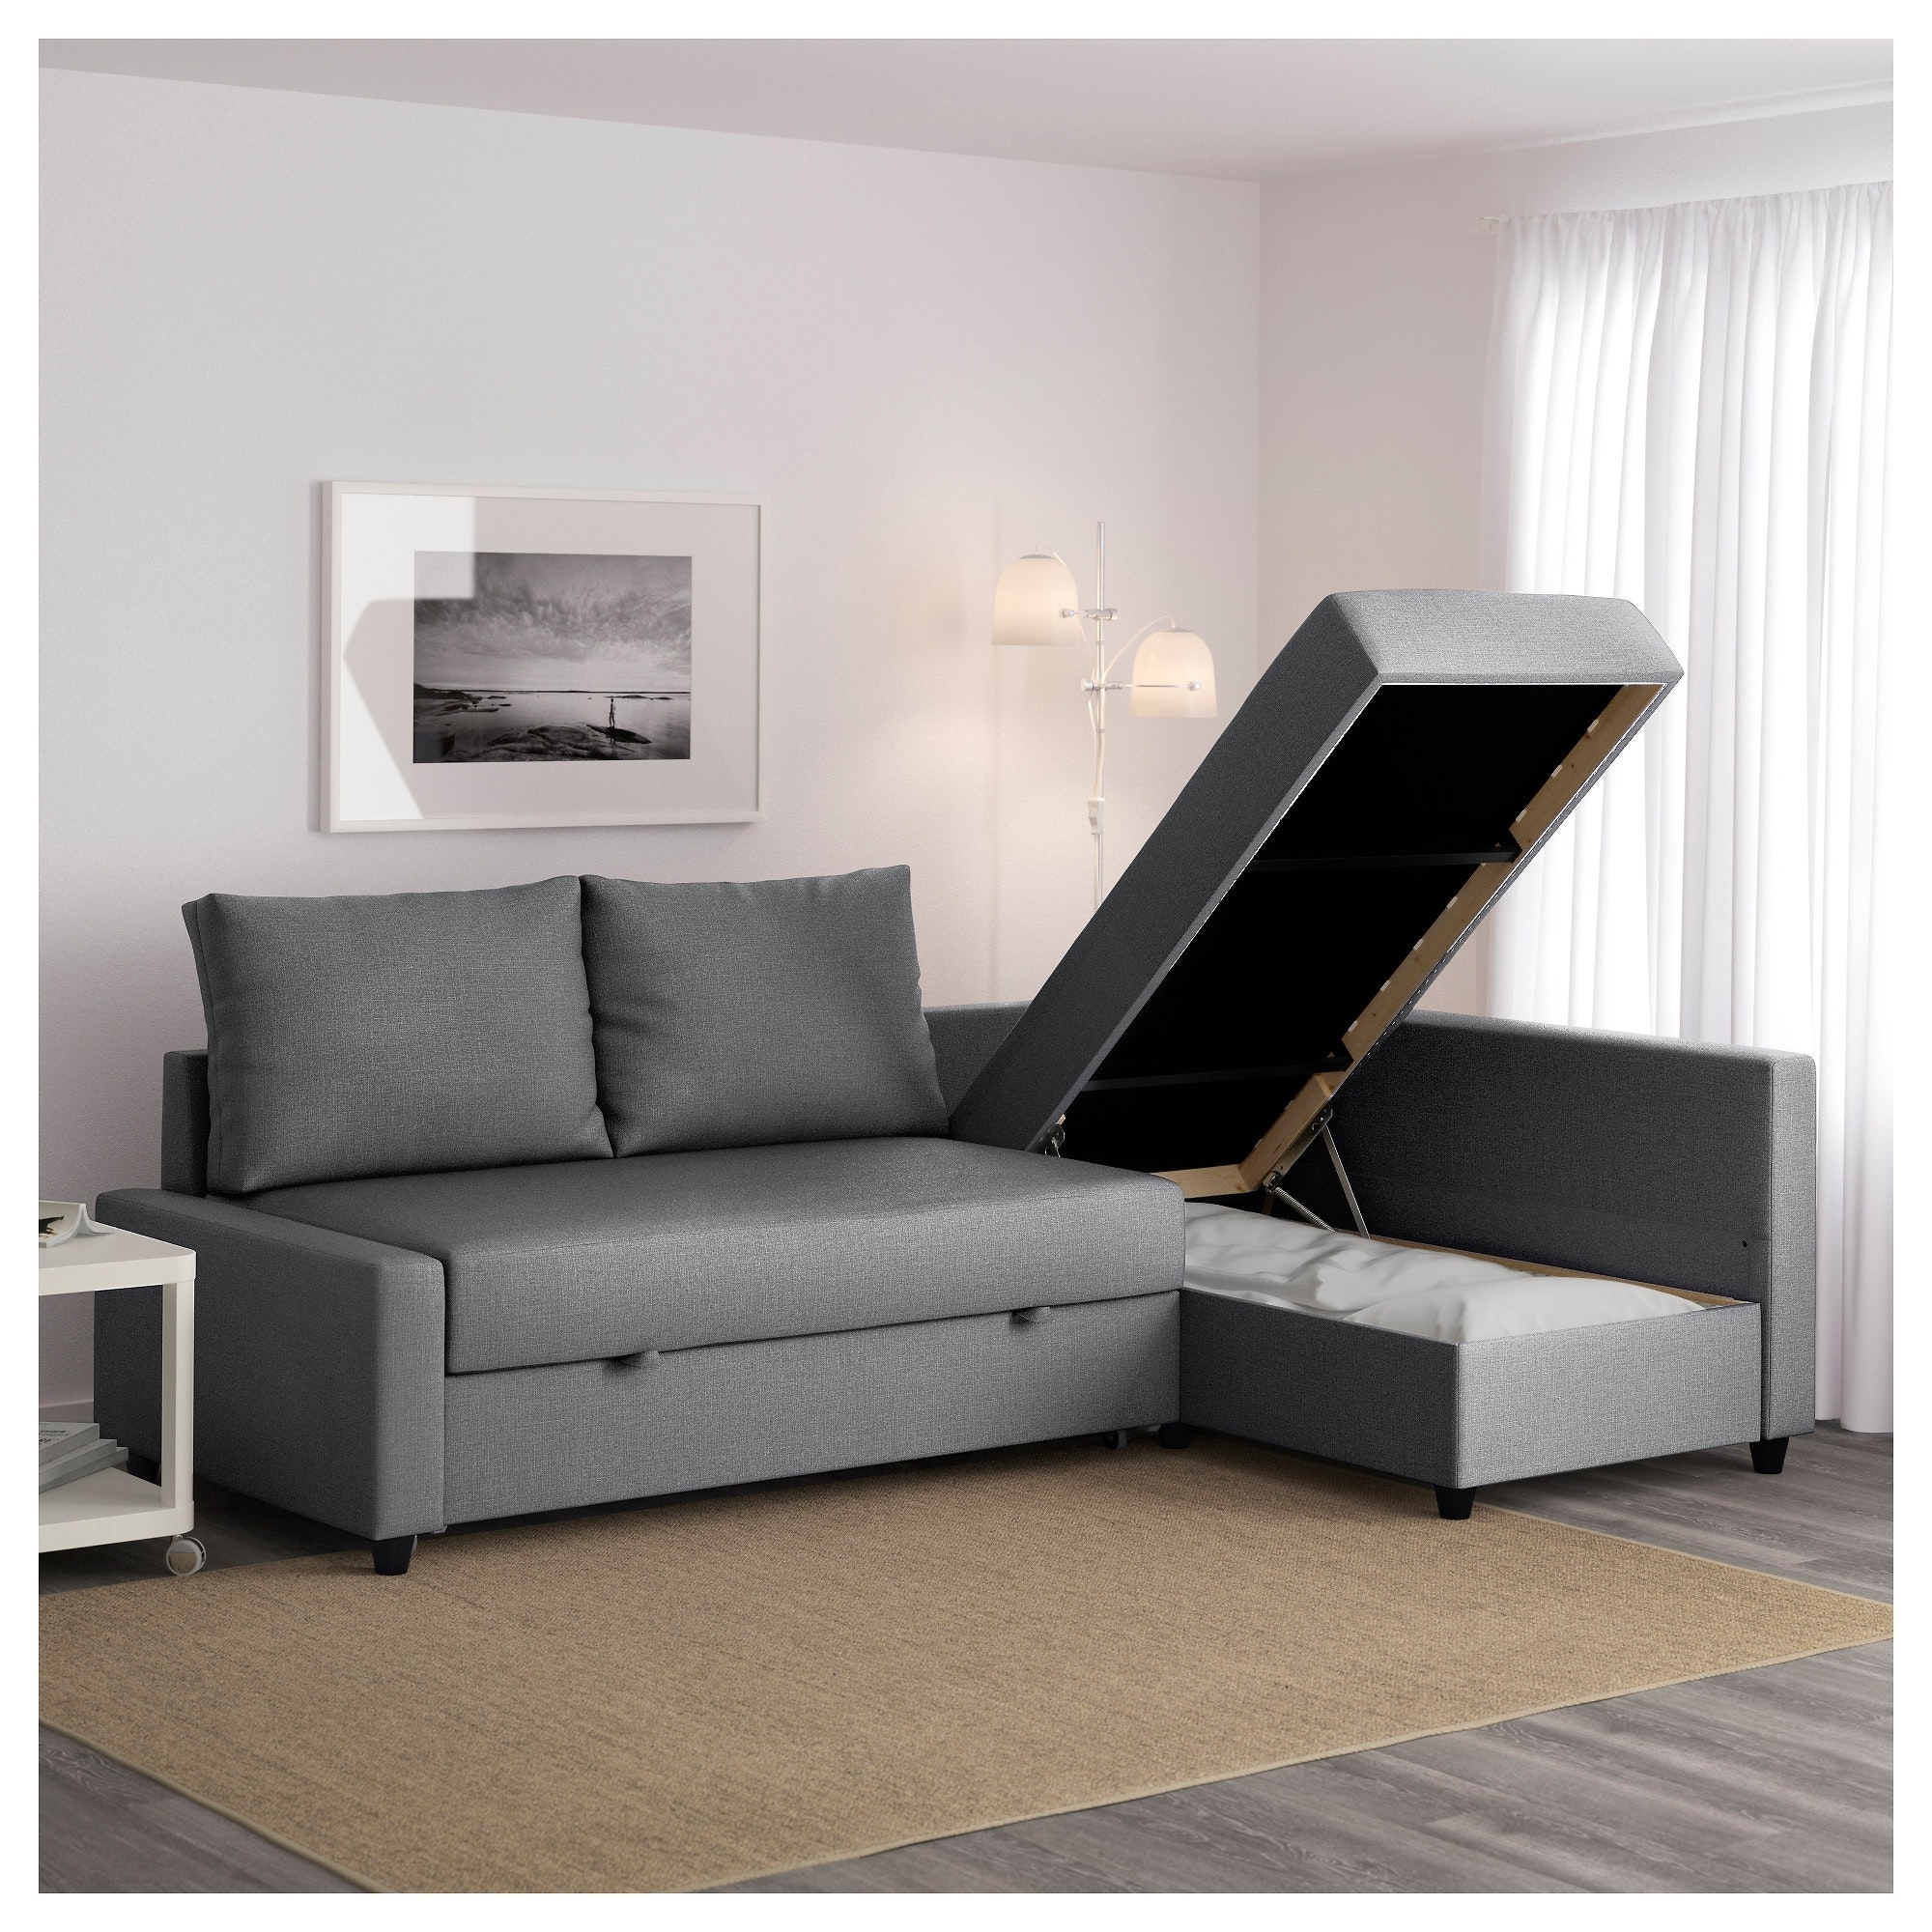 2019 Sofas Uk Pale Green Enchanting Friheten Corner Sofa Bed With Intended For Storage Sofas (View 12 of 20)